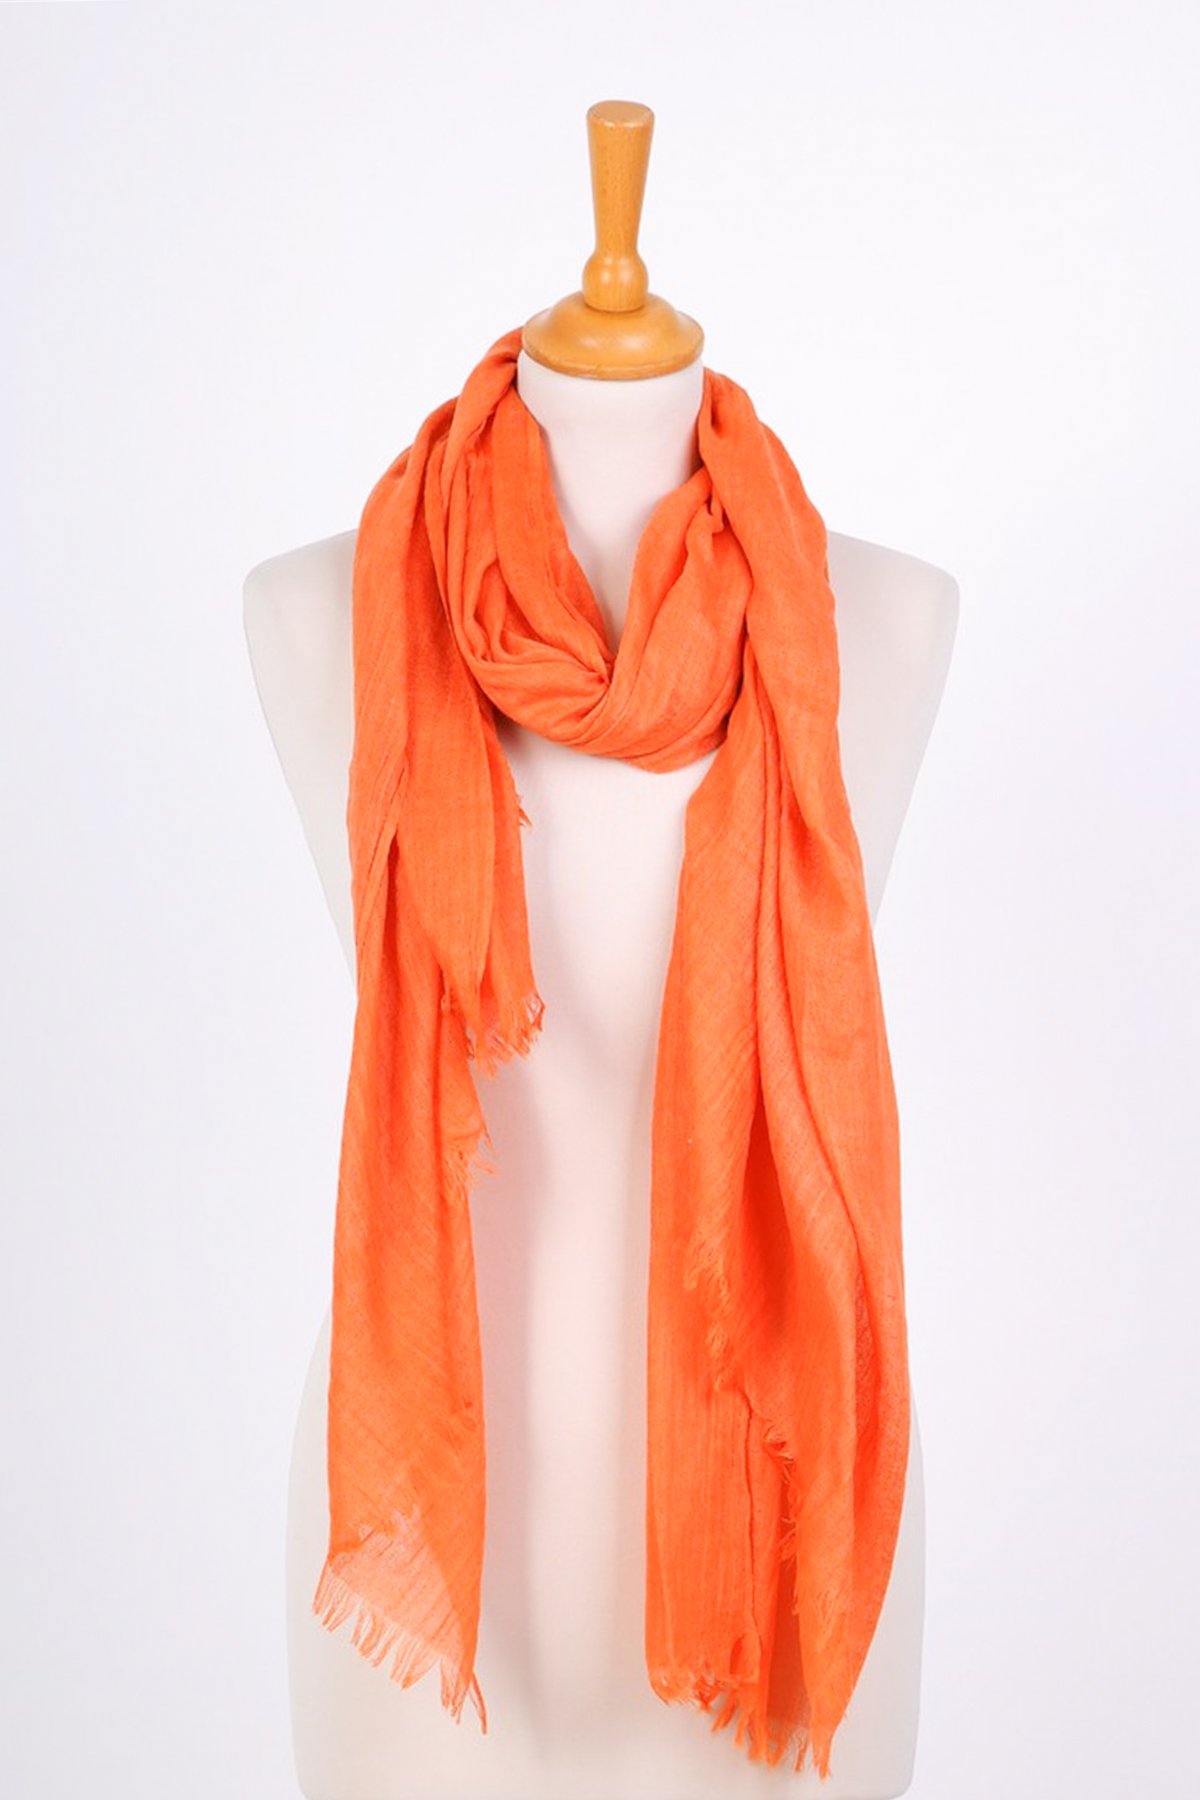 Foulards Accessoires Orange BEST ANGEL BA0439 #c eFashion Paris